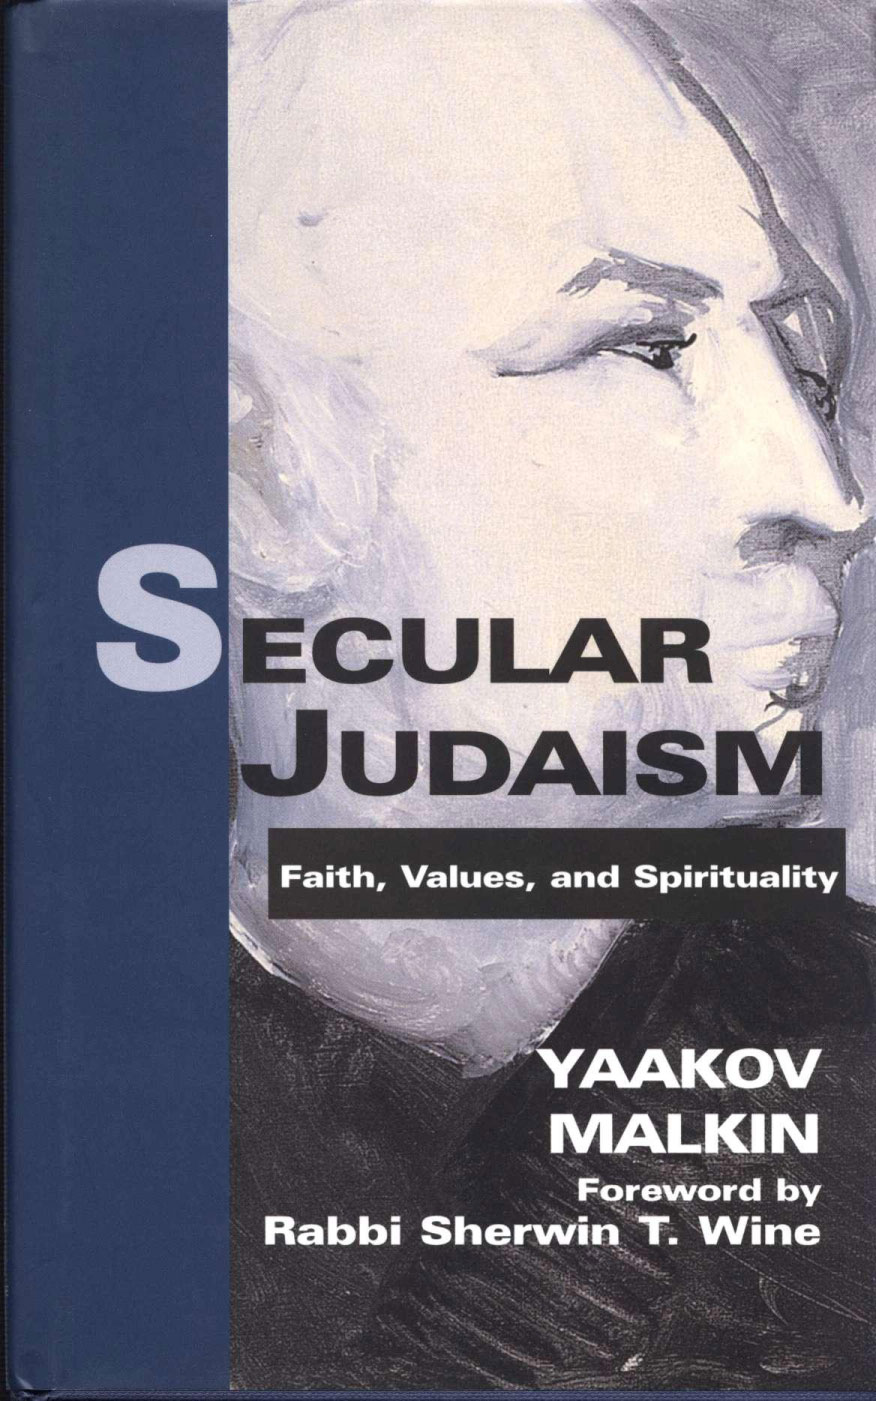 secular judaism - Yaakov Malkin, English, 2004